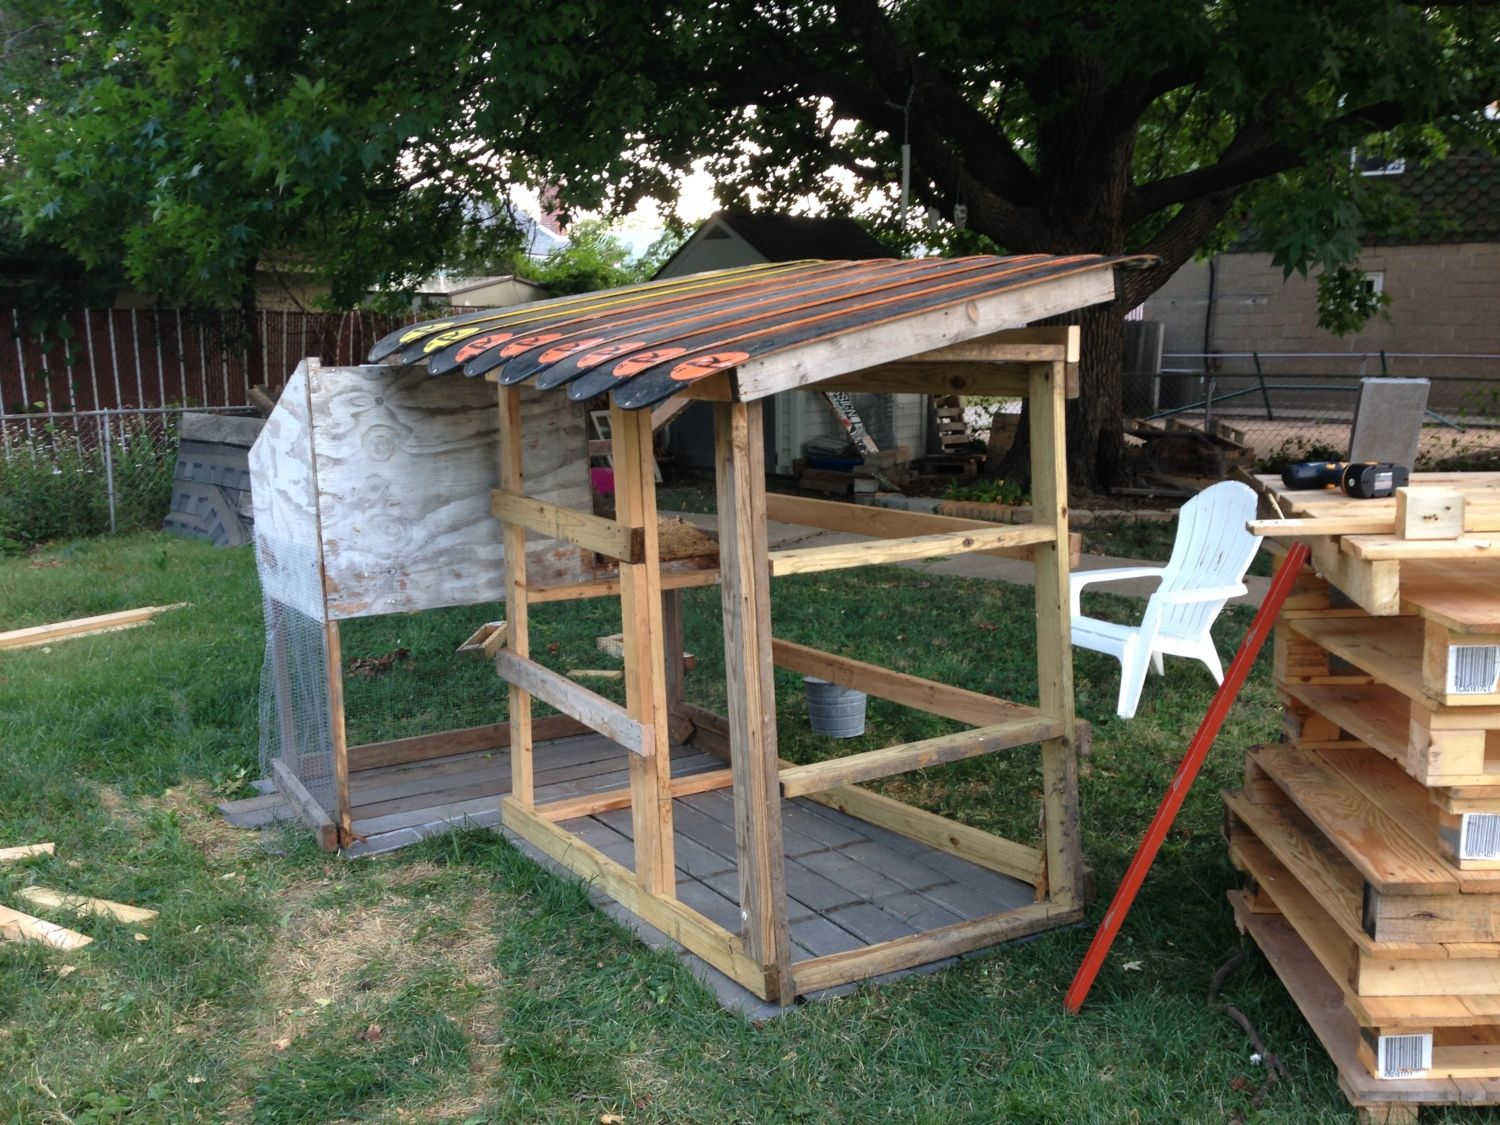 Our coop in progress. Made totally out of recycled materials!